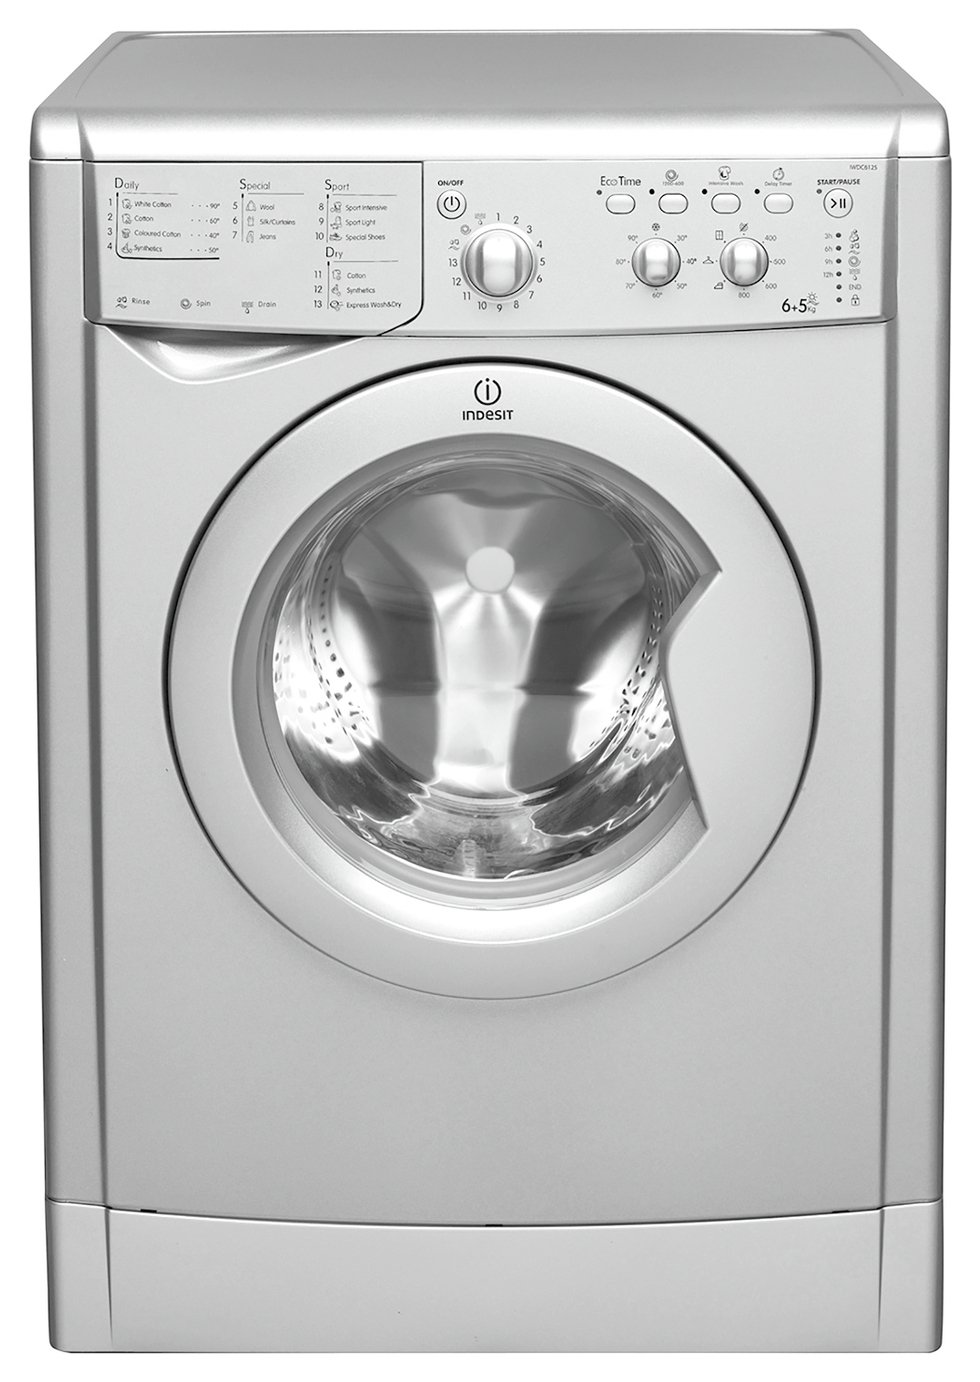 Indesit Iwdc 6125 Indesit Iwdc 6125 S 6kg 5kg 1200 Spin Washer Dryer Silver